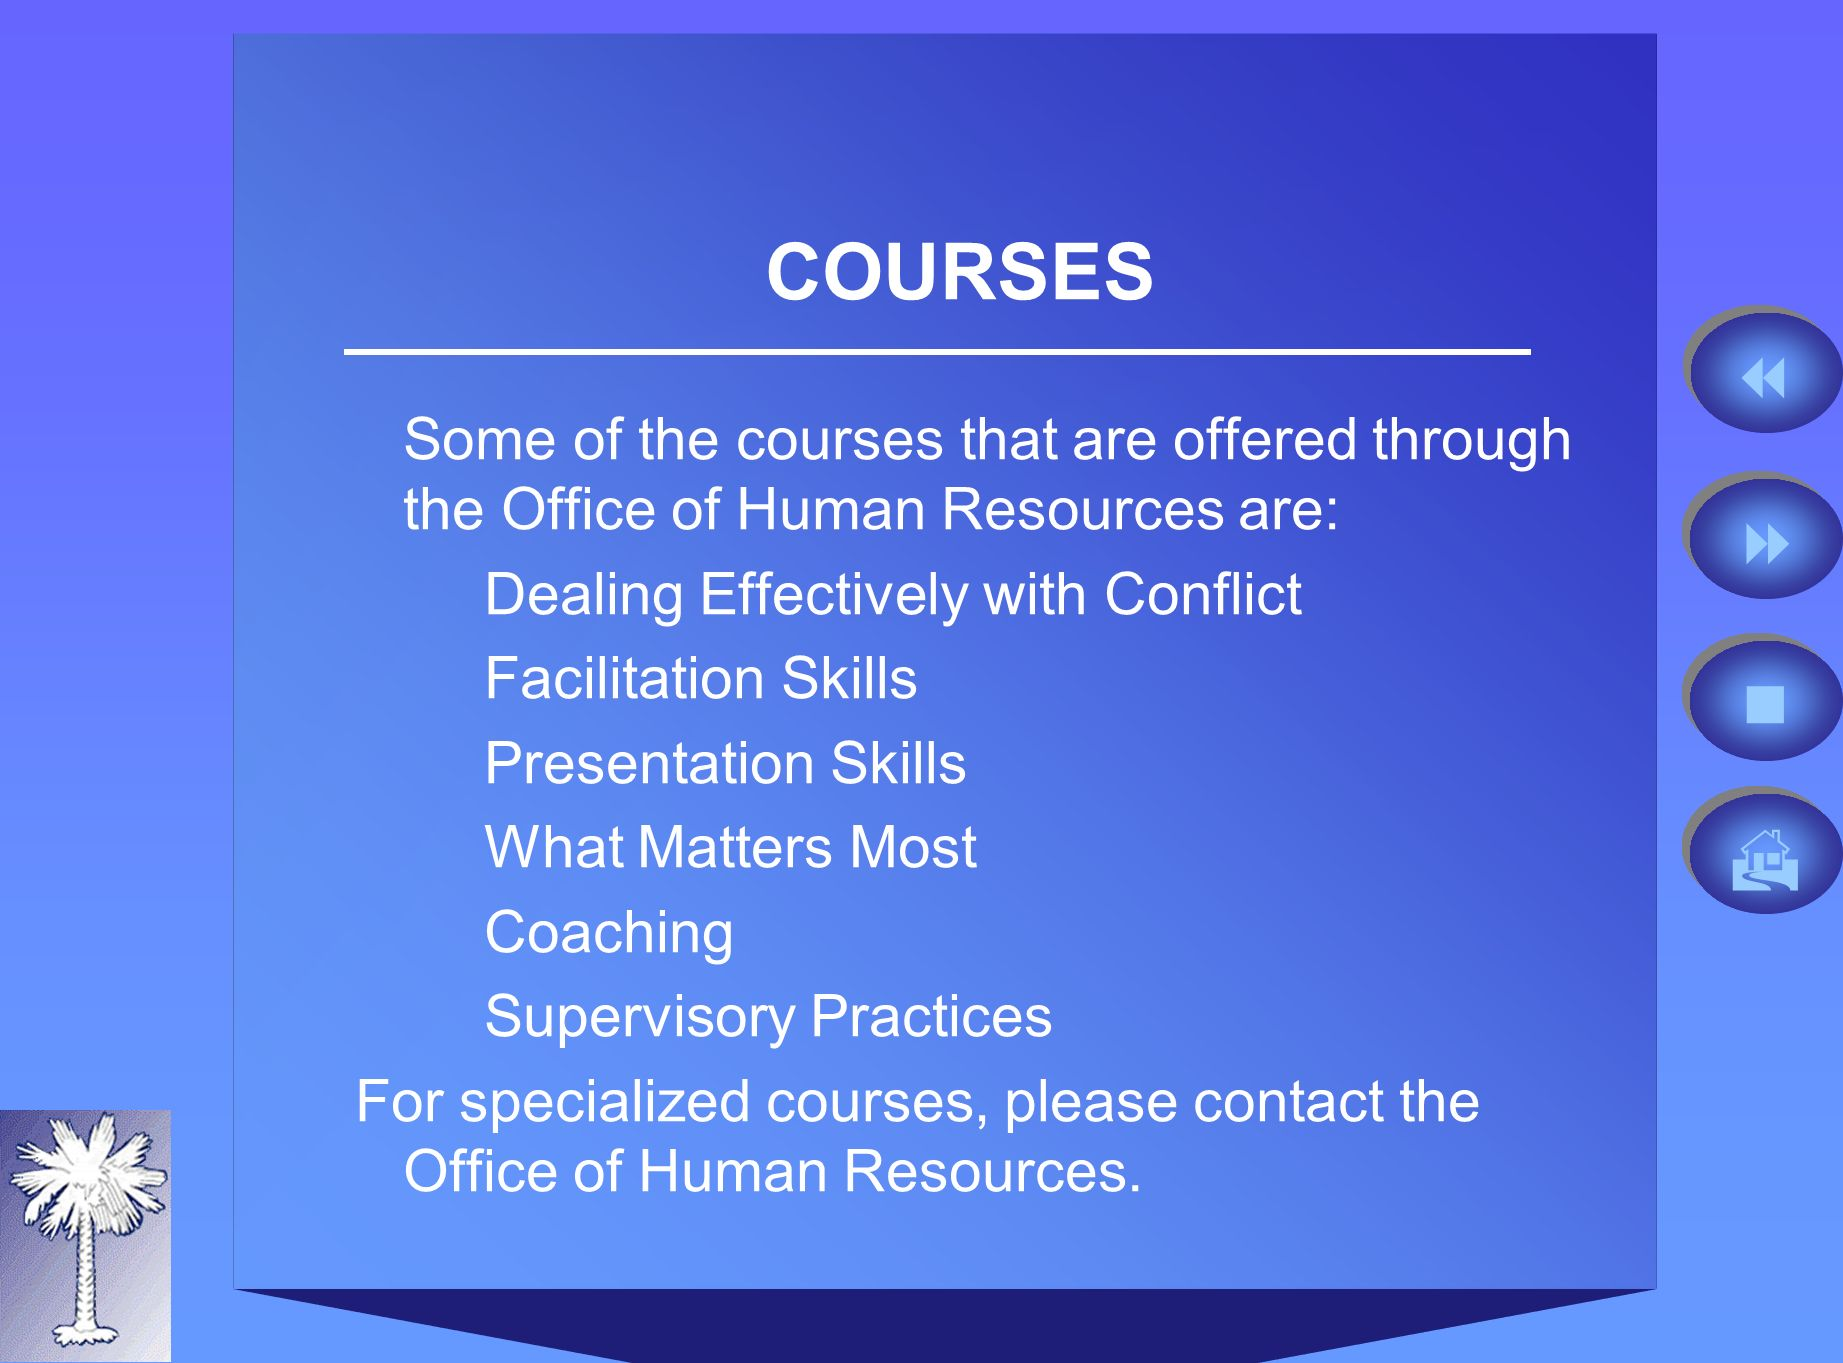 COURSES Some of the courses that are offered through the Office of Human Resources are: Dealing Effectively with Conflict Facilitation Skills Presentation Skills What Matters Most Coaching Supervisory Practices For specialized courses, please contact the Office of Human Resources.